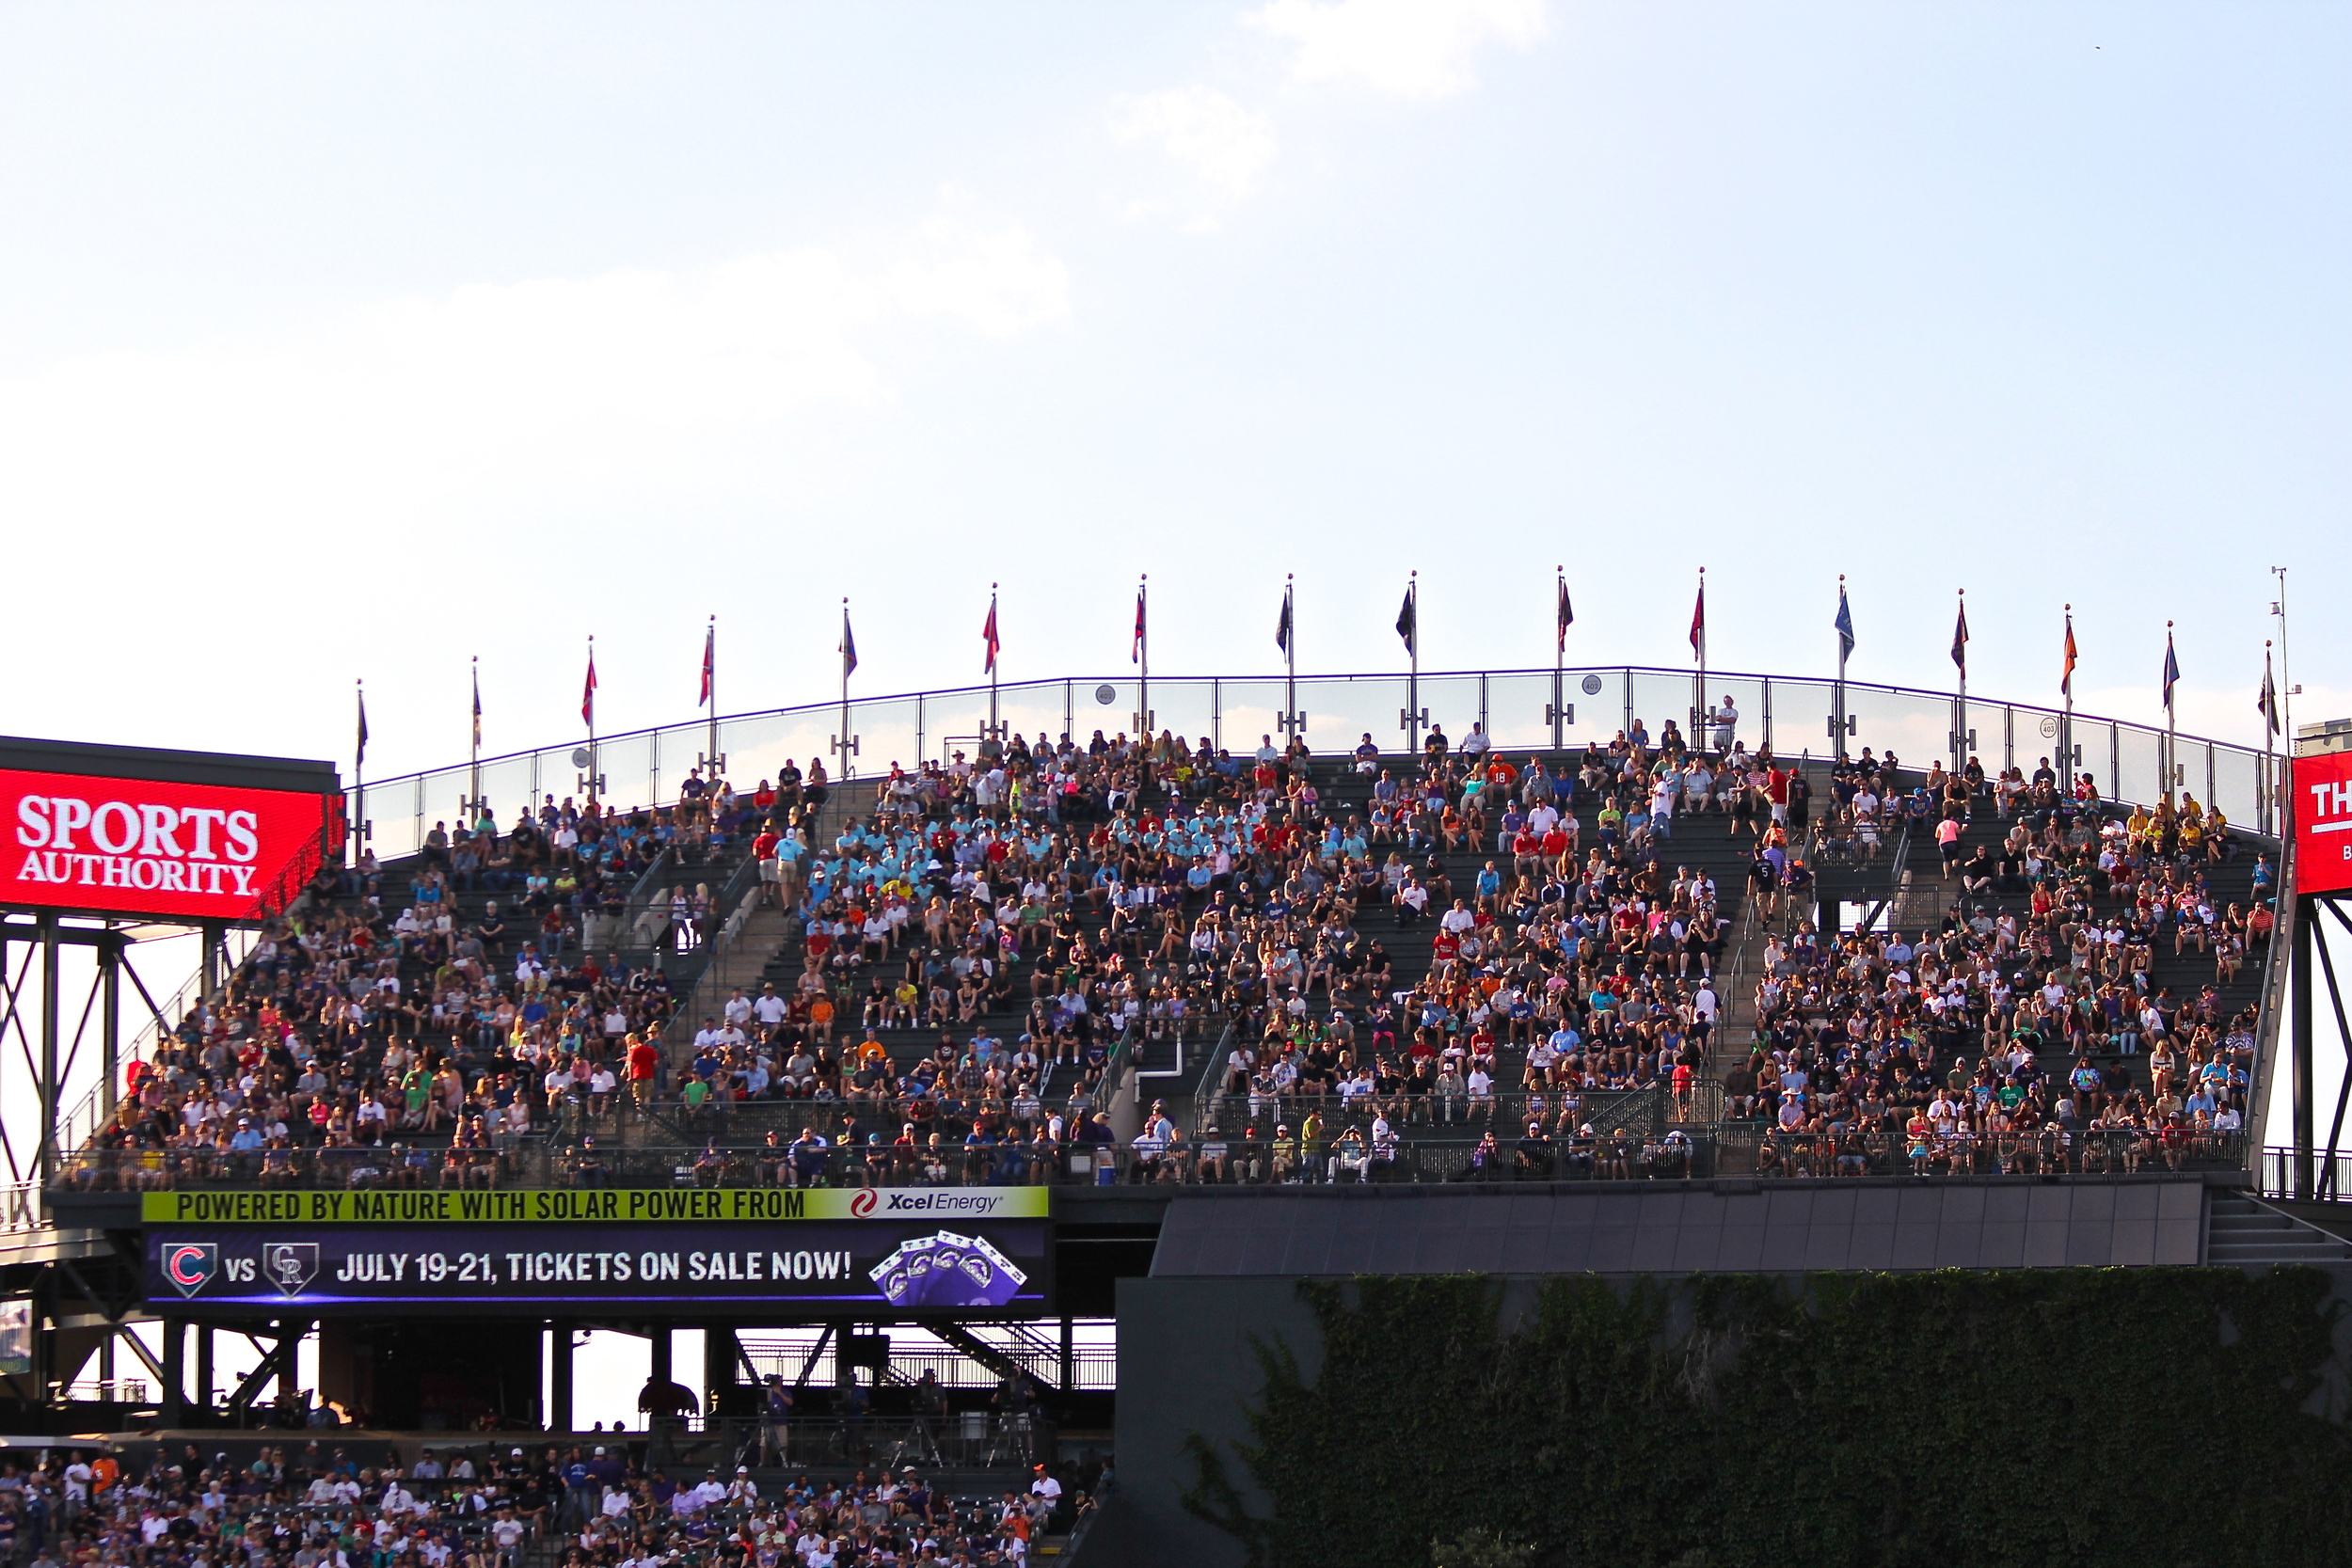 Rockpile seats - $1 under 12 or over 55 and $4 for everyone else